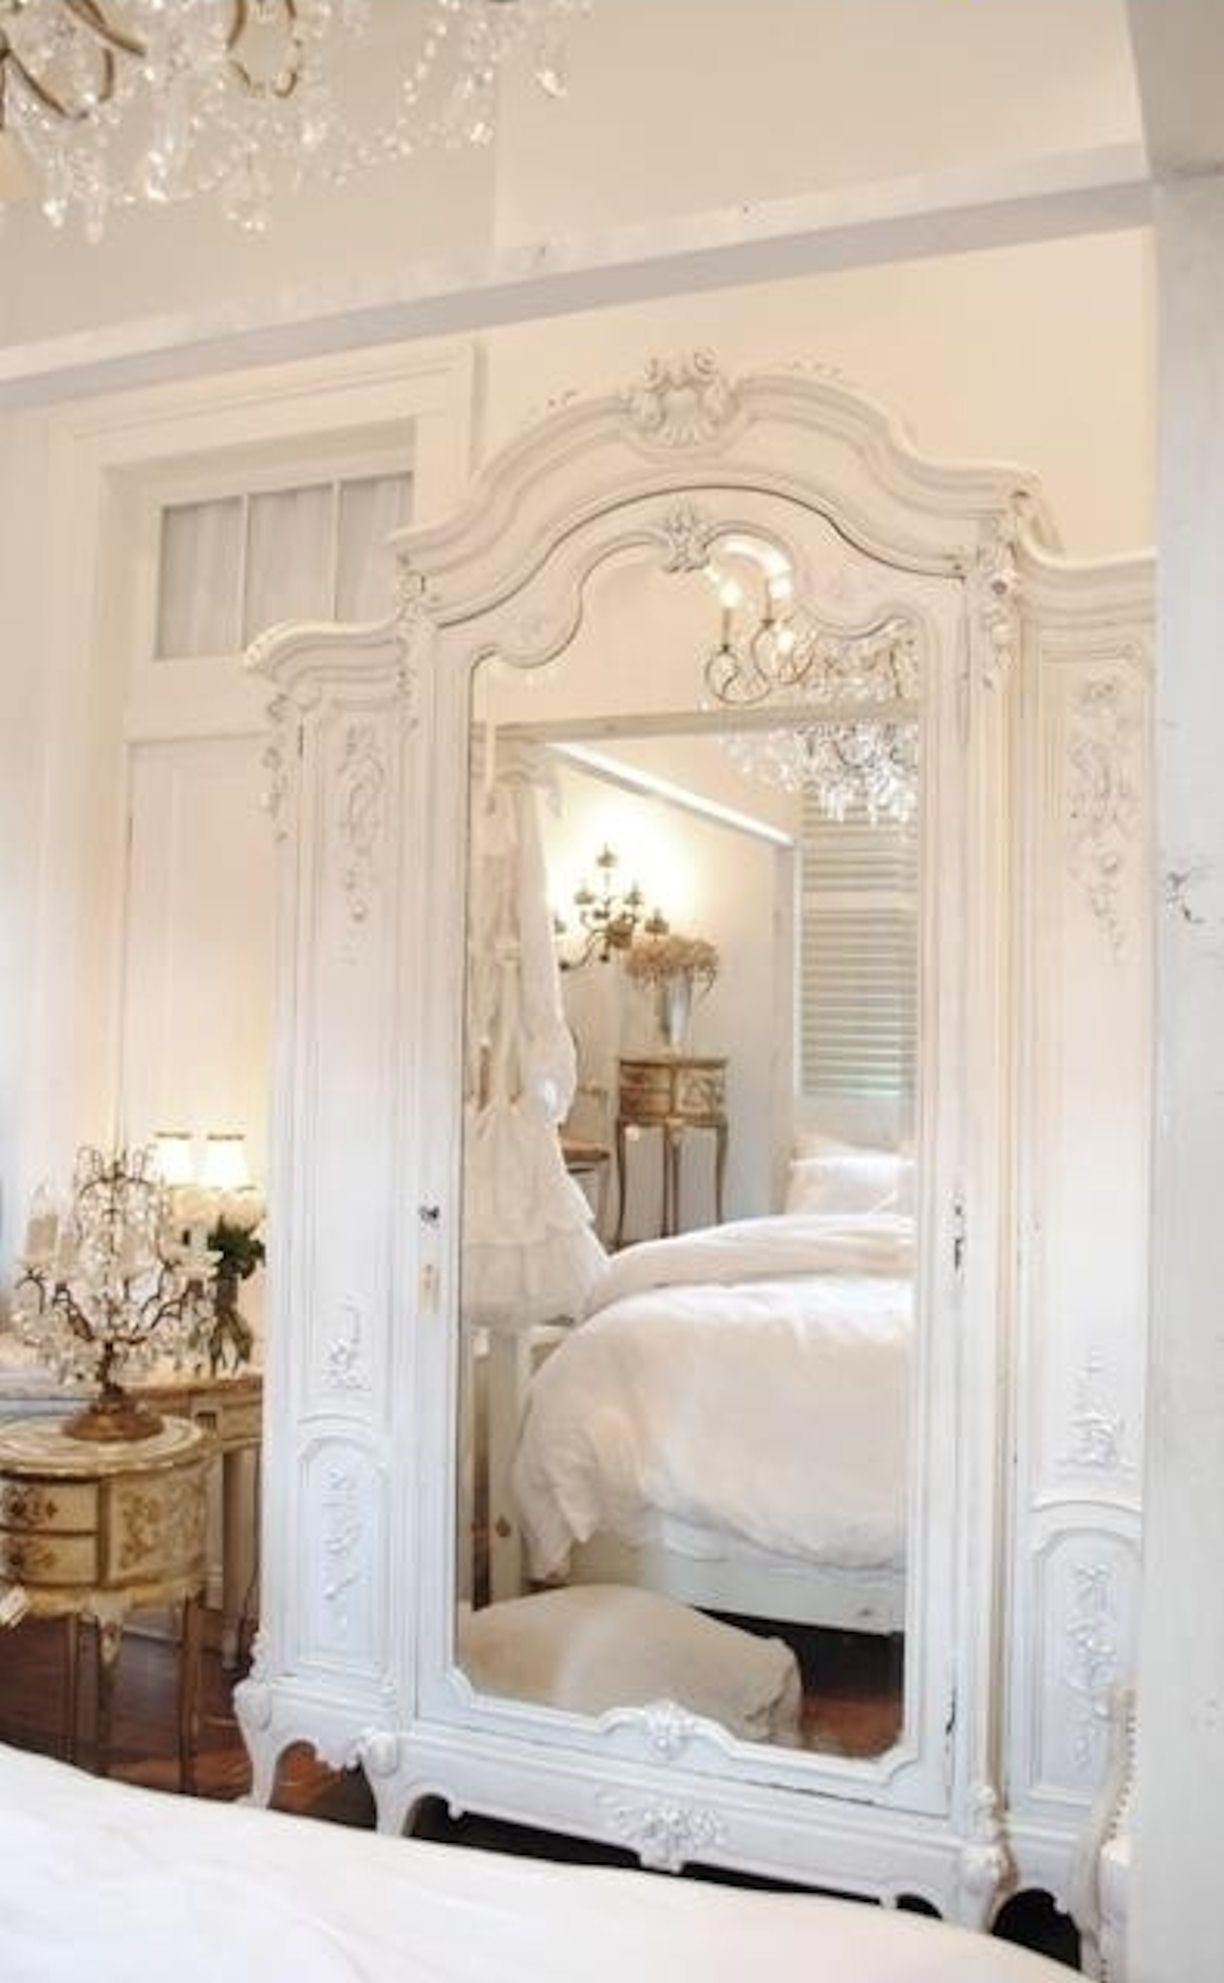 Pin by pamela vanjackson piggee on decor for le masion pt - Dormitorio vintage chic ...